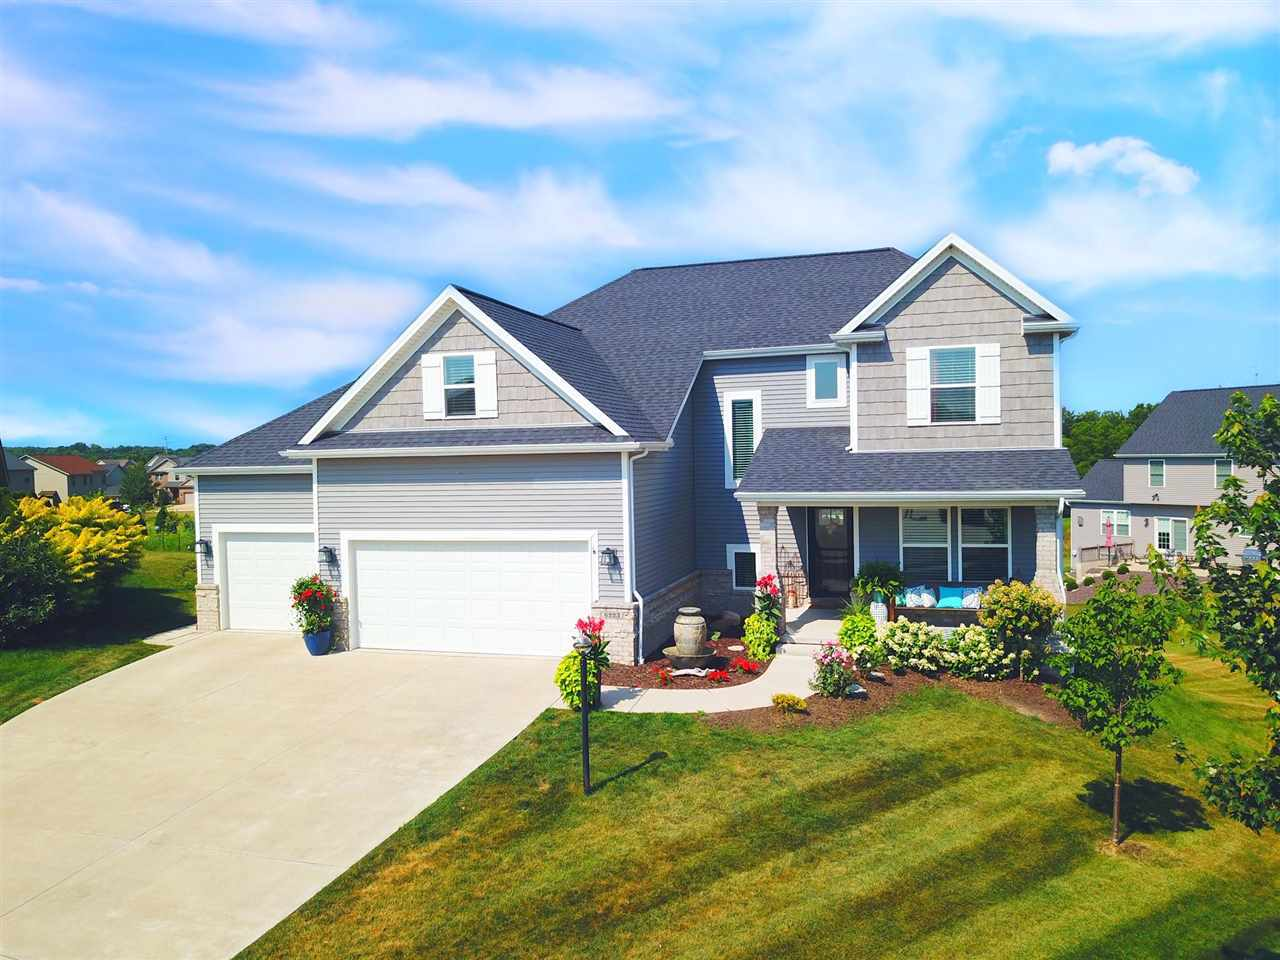 $389,900 - 5Br/4Ba -  for Sale in Sommer Place, Edwards